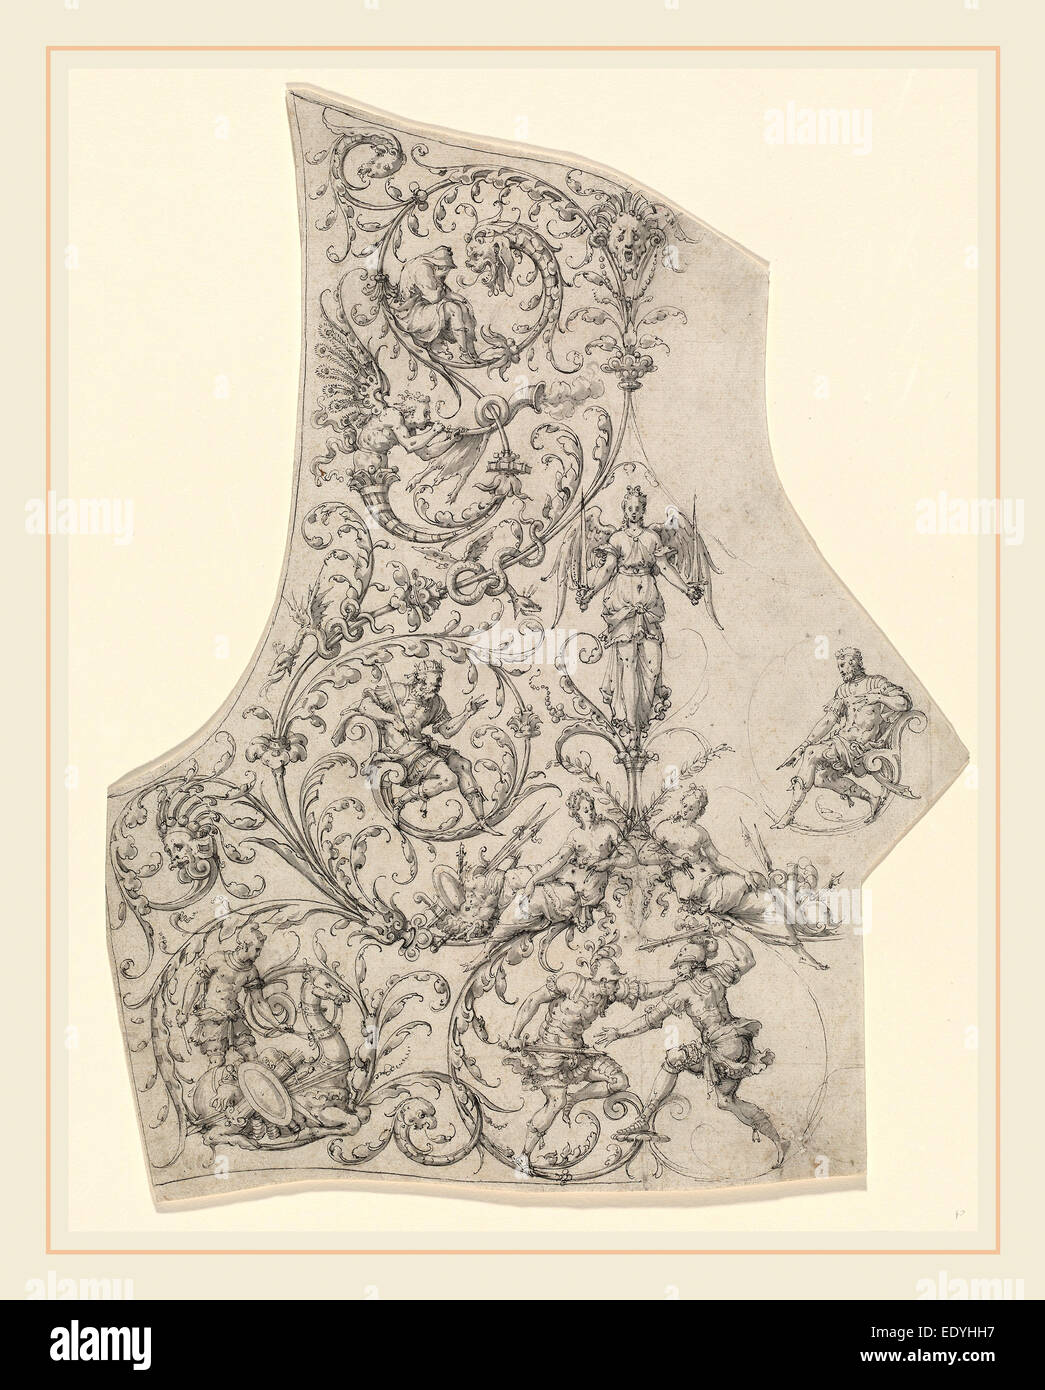 Etienne Delaune, The Backplate of a Suit of Parade Armor, French, 1518-1519-1583, c. 1557, pen and black ink with - Stock Image